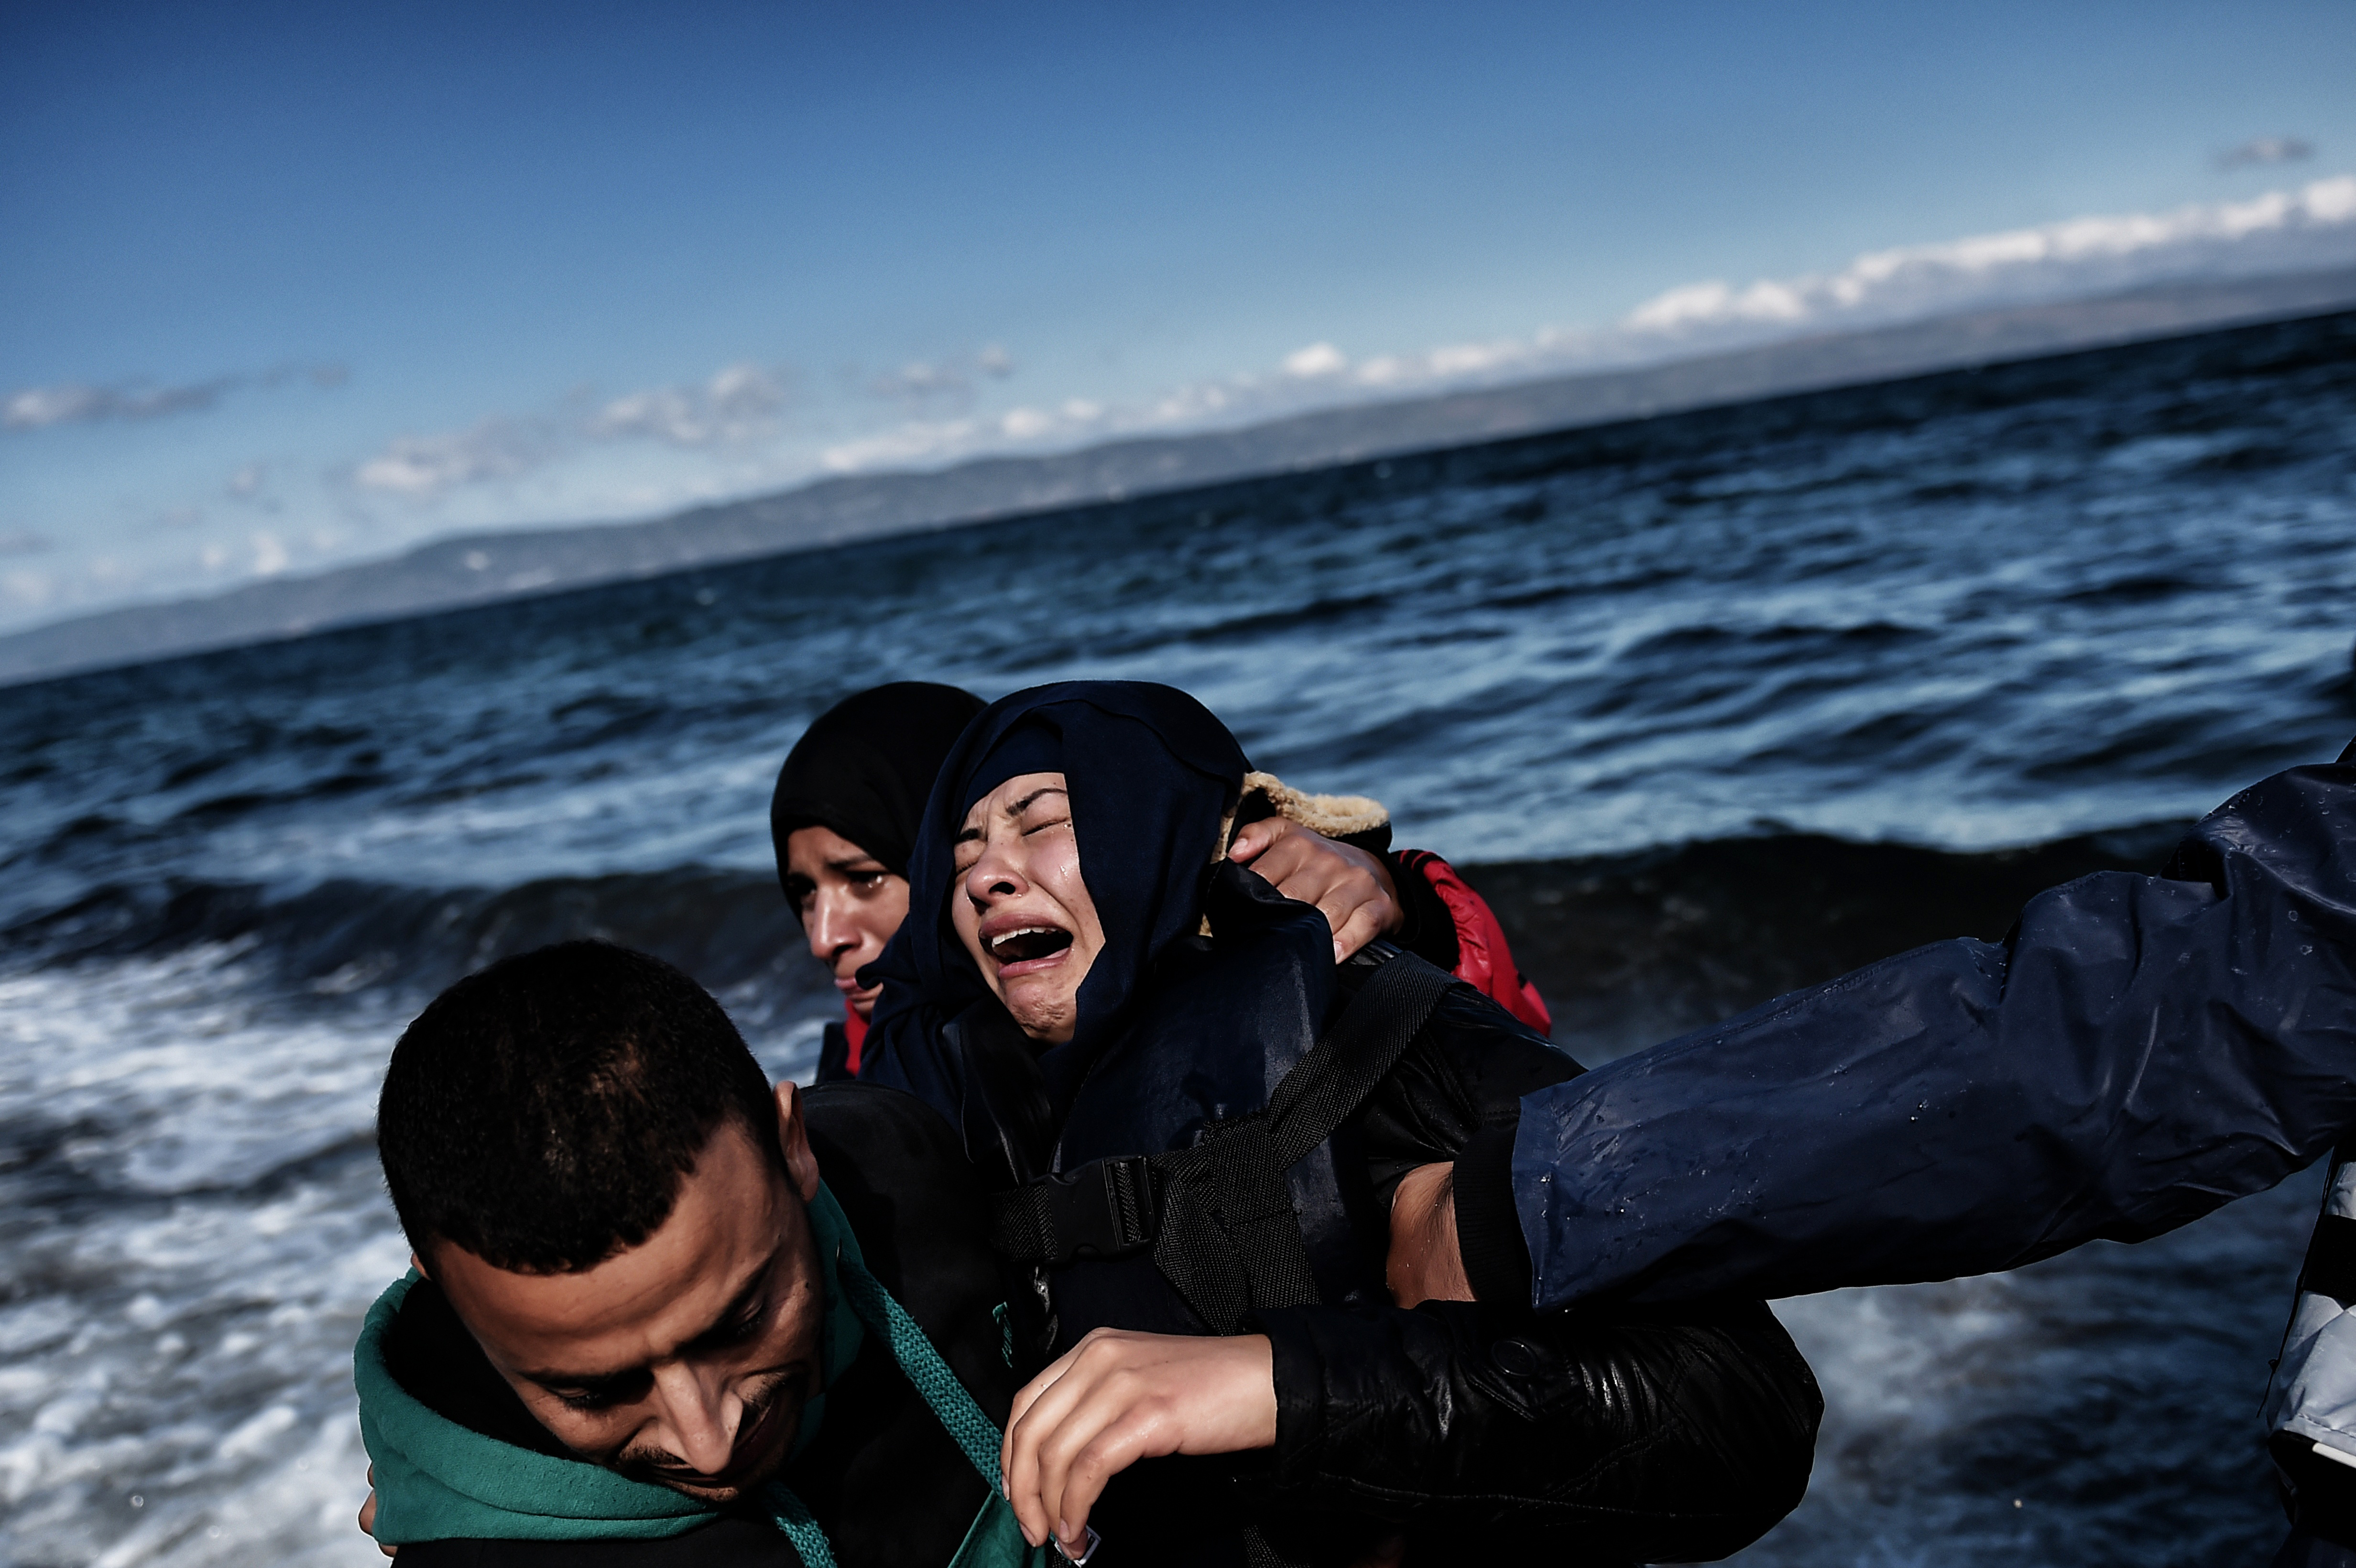 A man comforts a woman upon arrival with other refugees and migrants on the Greek island of Lesbos on October 25, 2015 after they crossed the Aegean sea from Turkey.